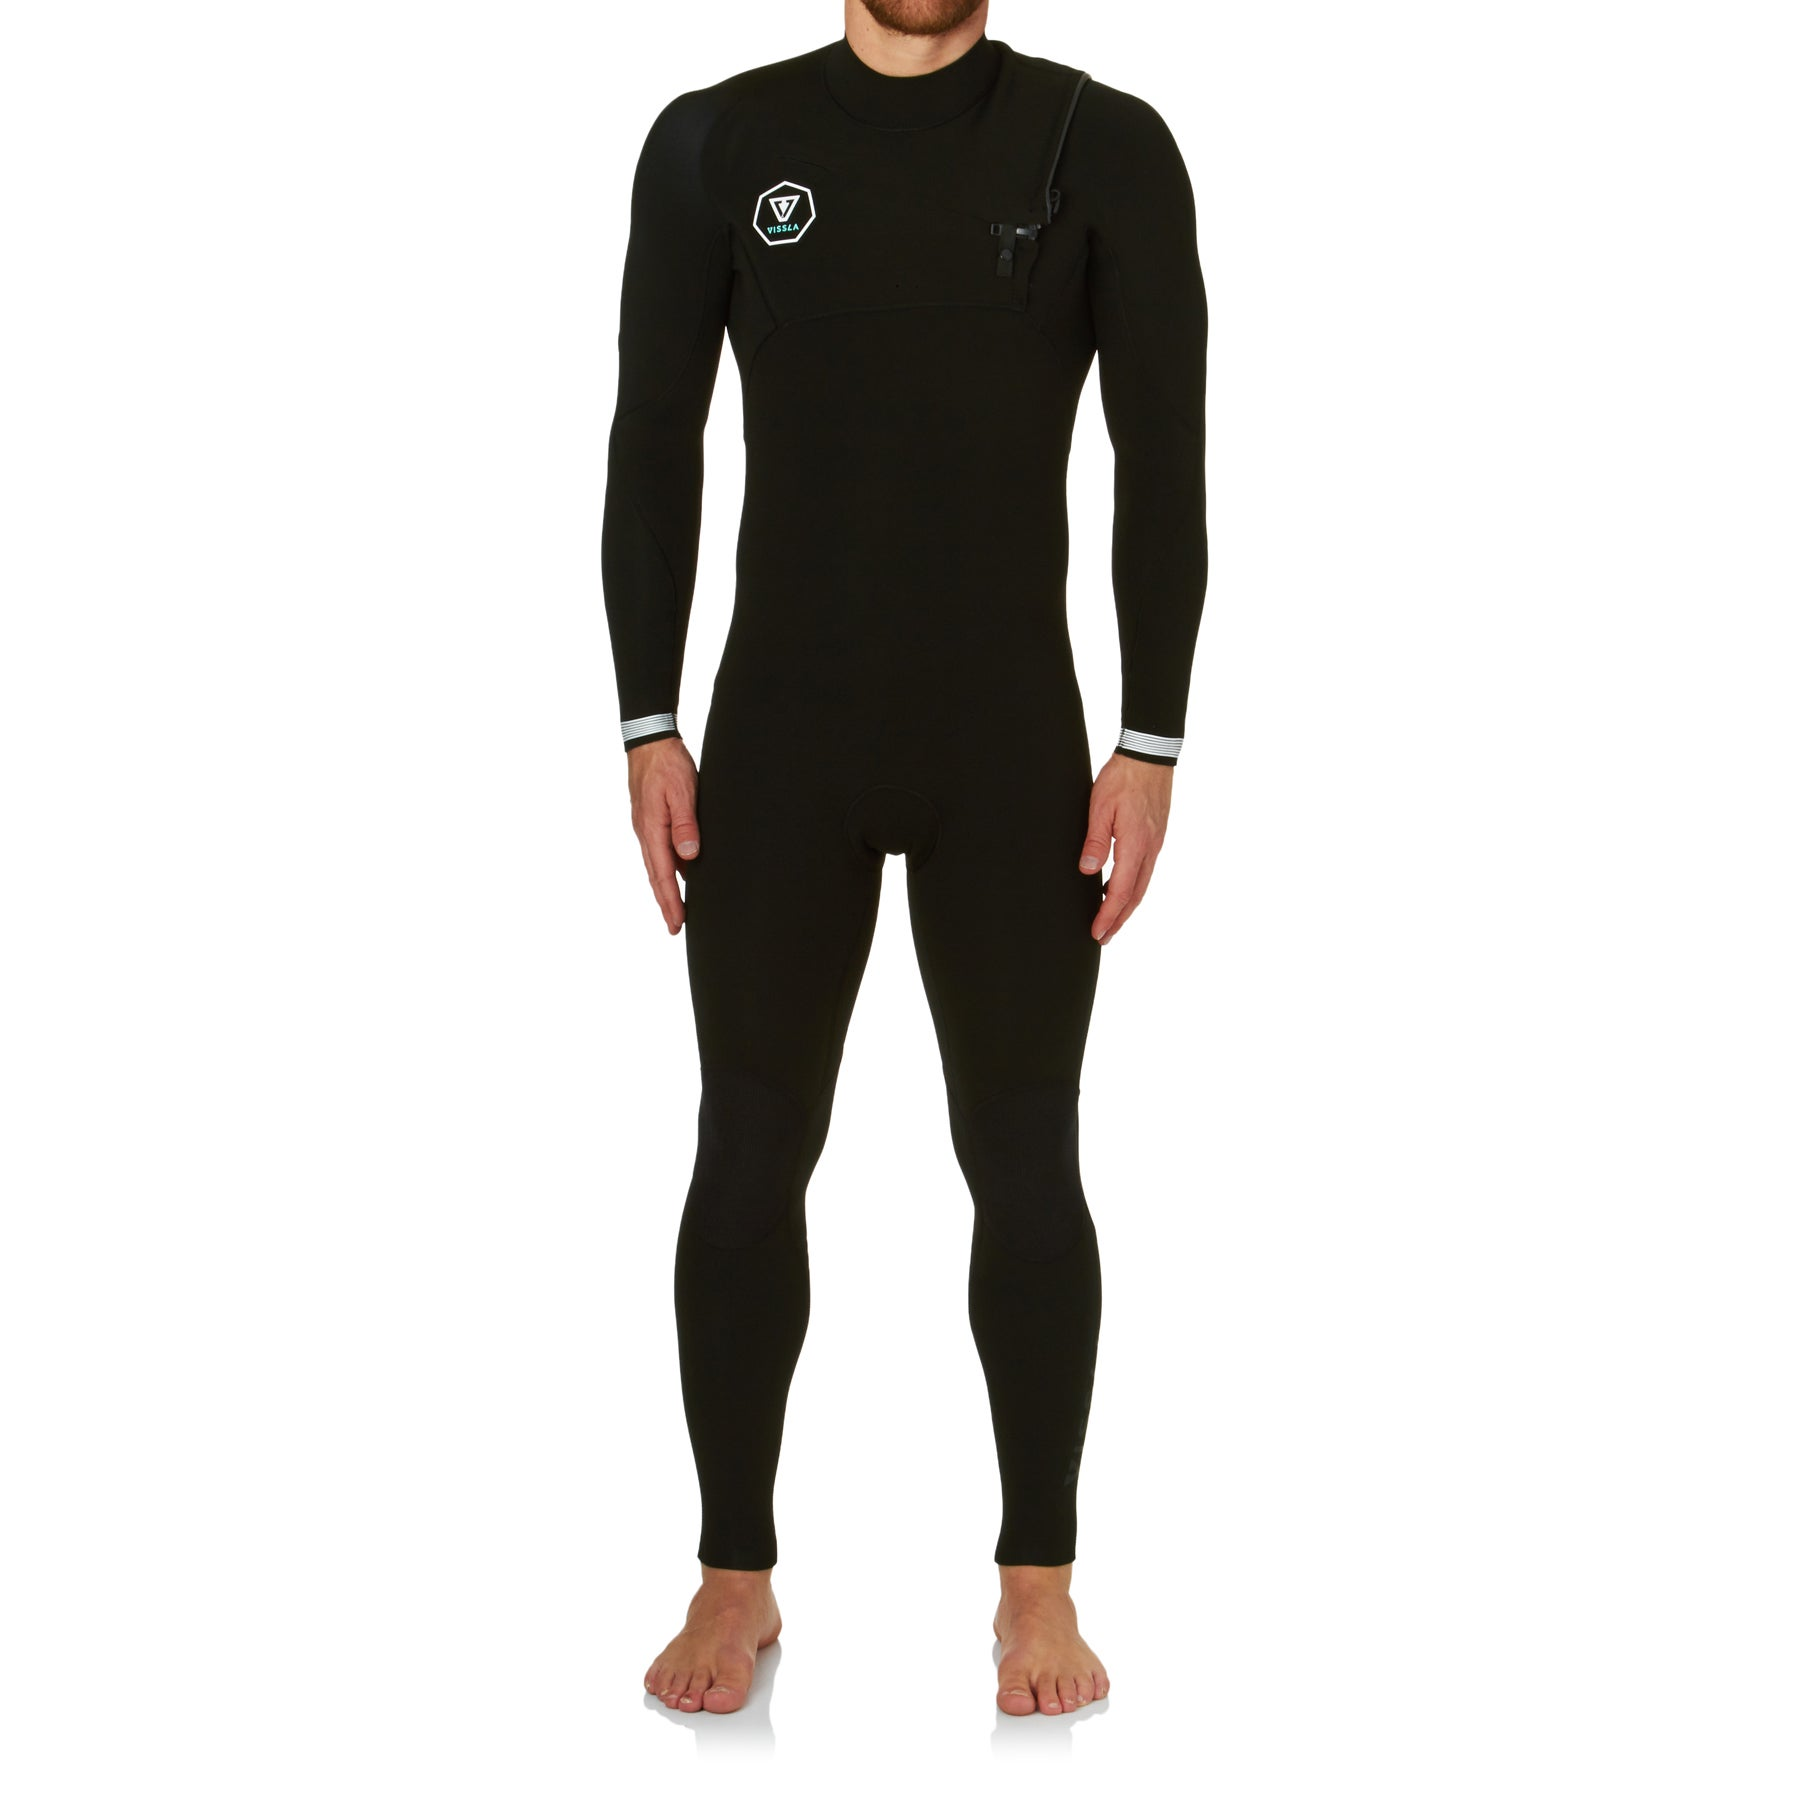 Vissla 3-2mm Seven Seas Chest Zip Wetsuit - Black With White